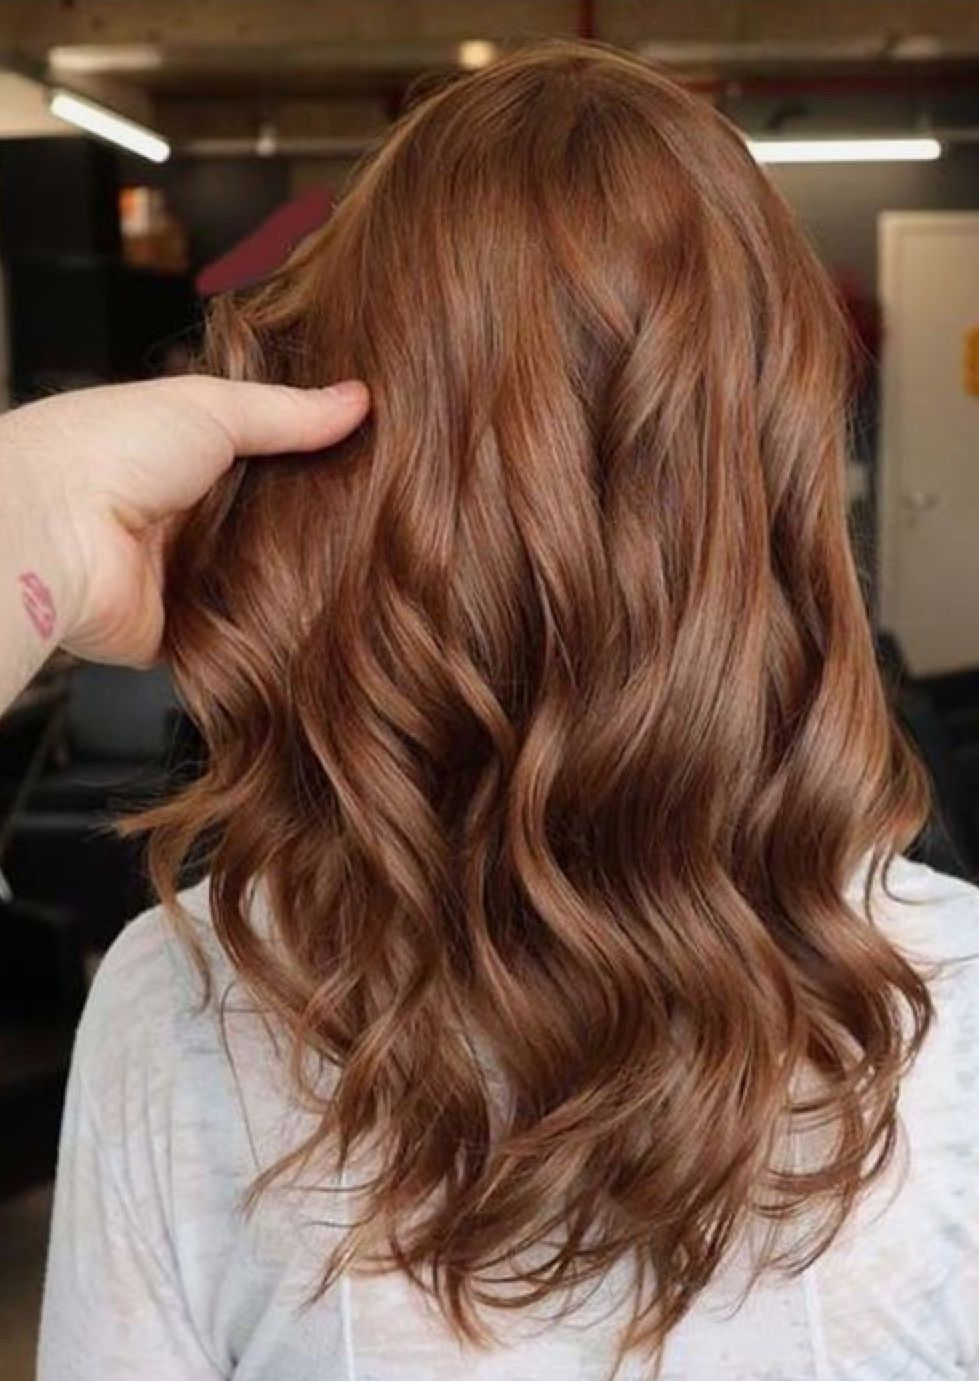 Pin By Claire On Tips With Images Ginger Hair Color Hair